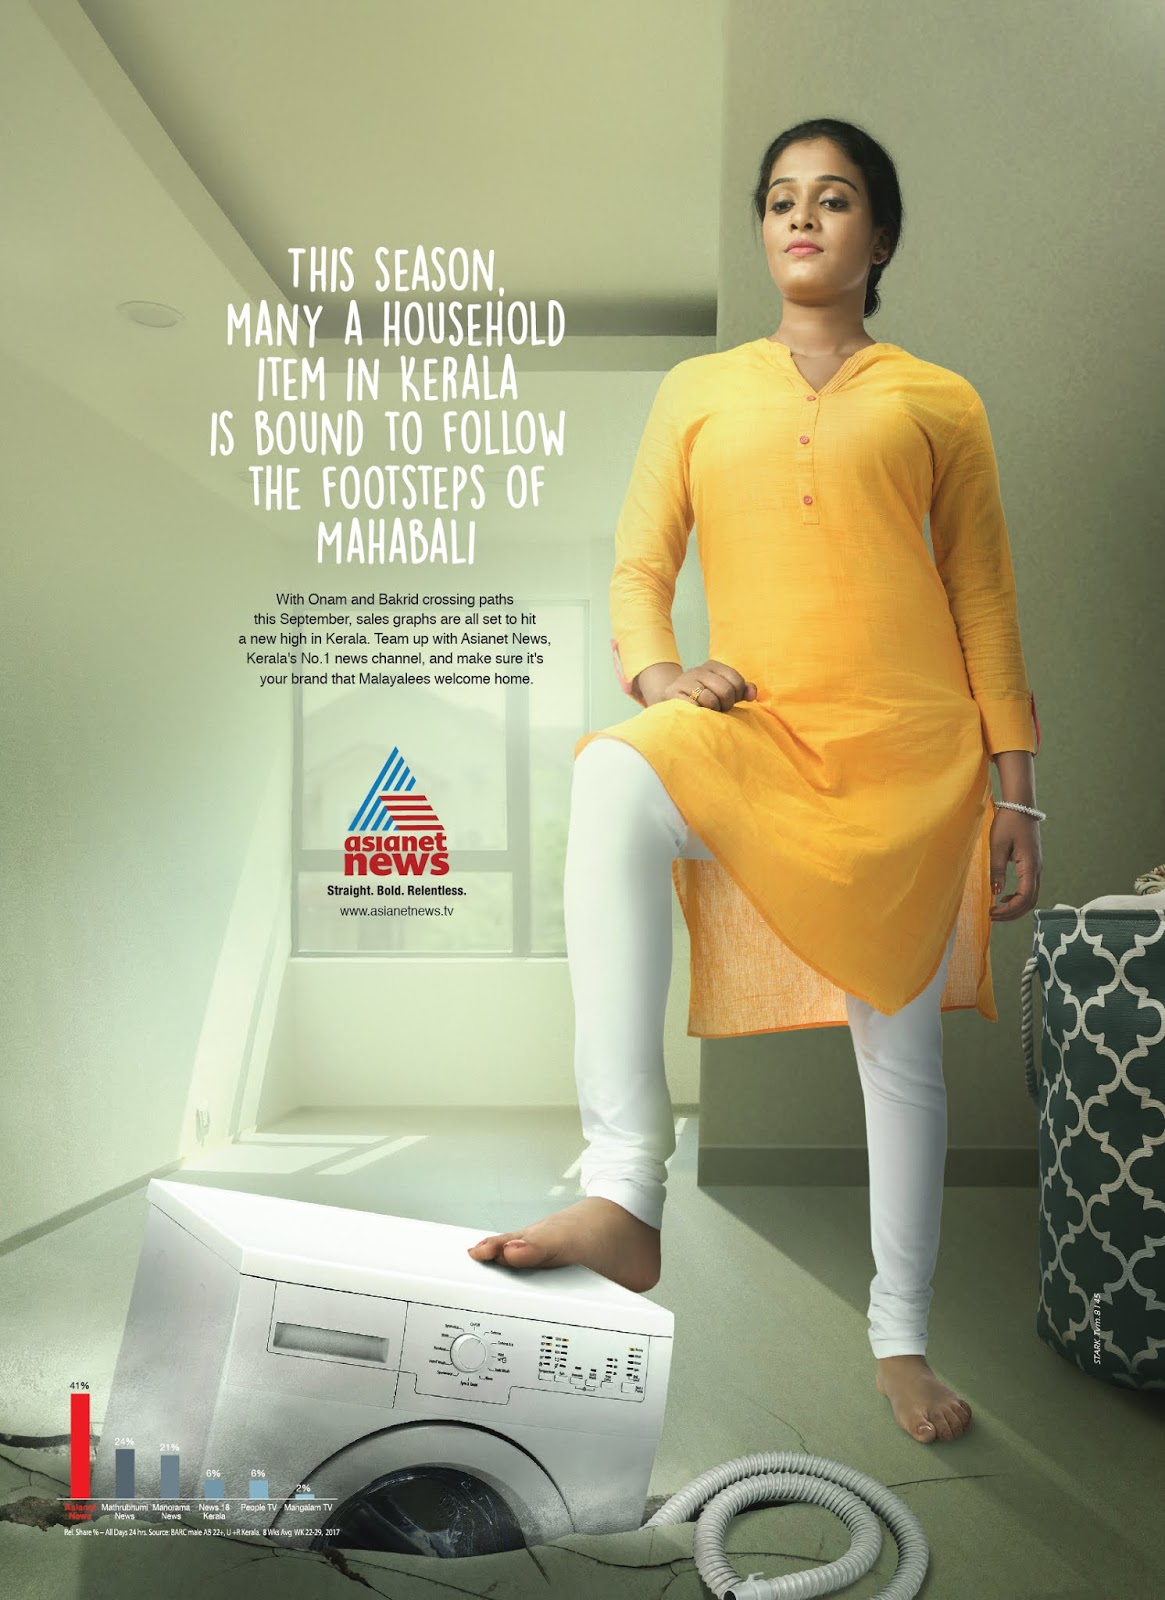 Celebrate this onam with Asianet News in The Mahabali Way 1 | Stark Communications Pvt Ltd